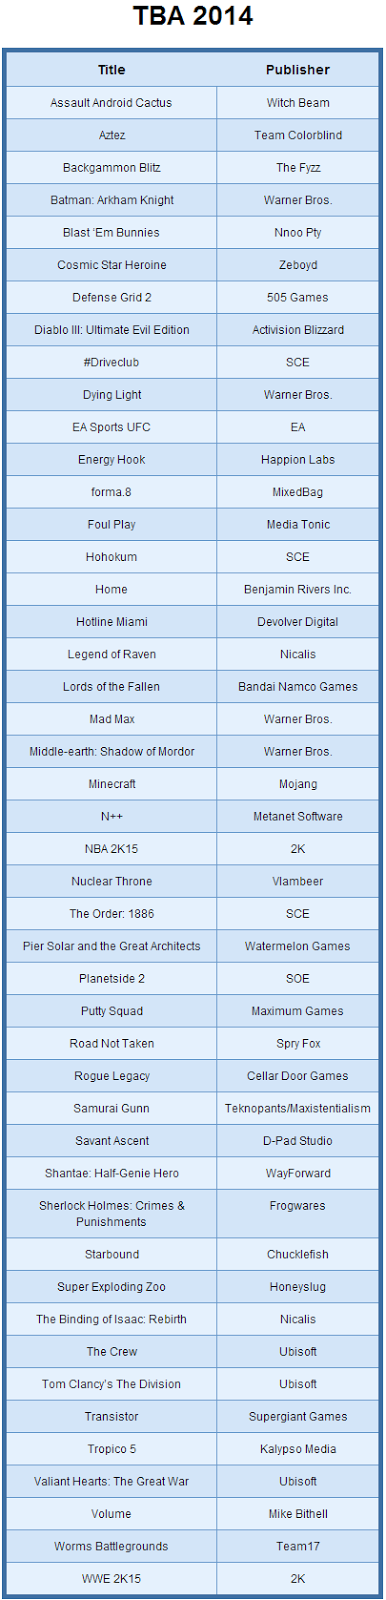 List of PS4 Games Release in TBA 2014